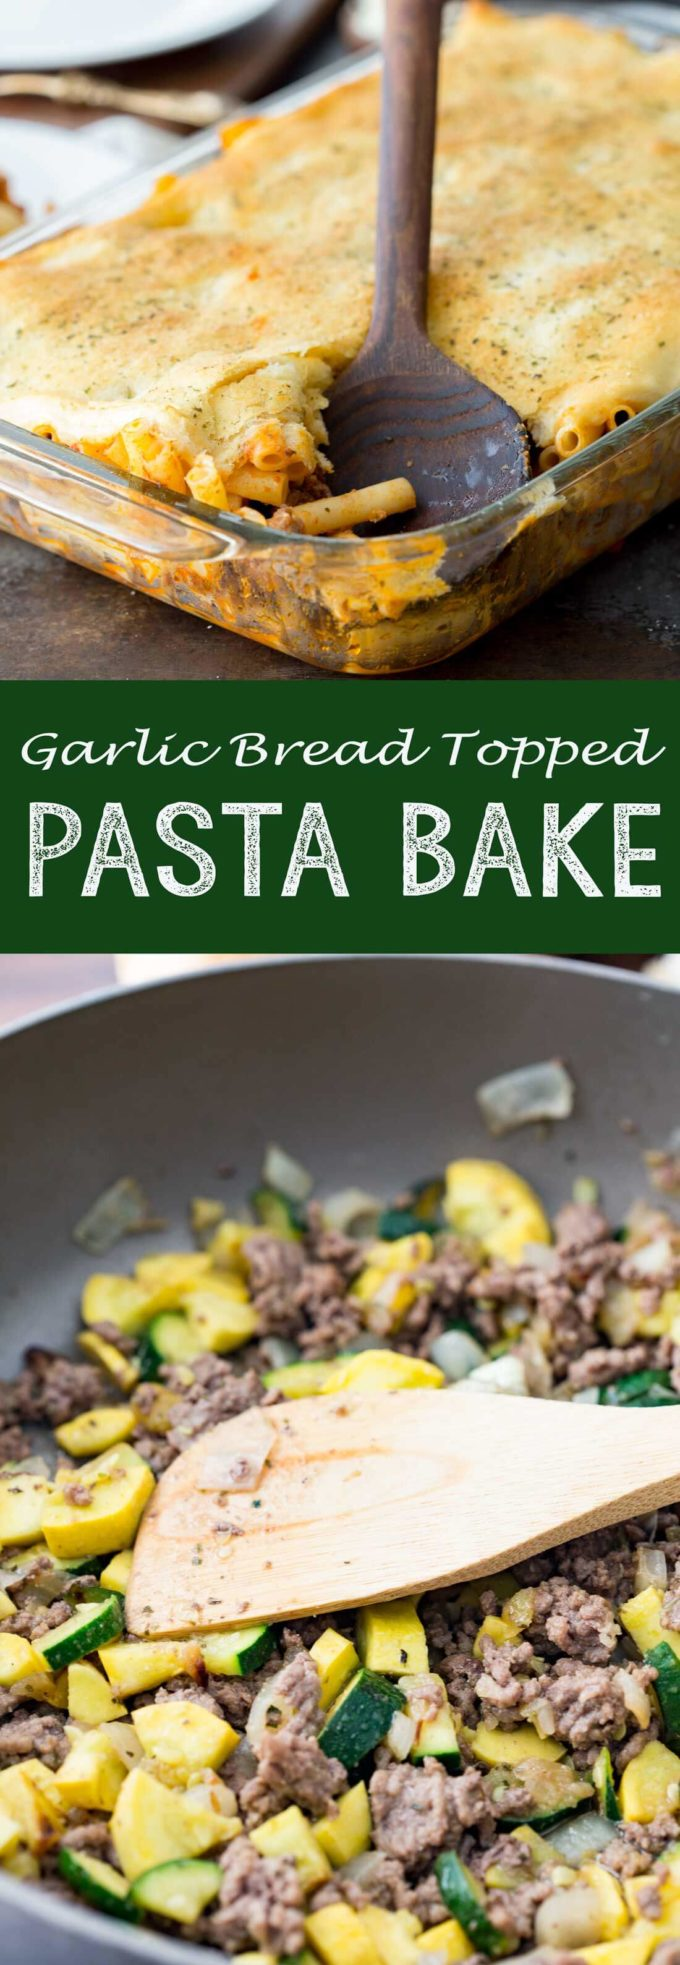 A garlic bread topped, easy pasta bake recipe with homestyle ragu and tons of delicious veggies